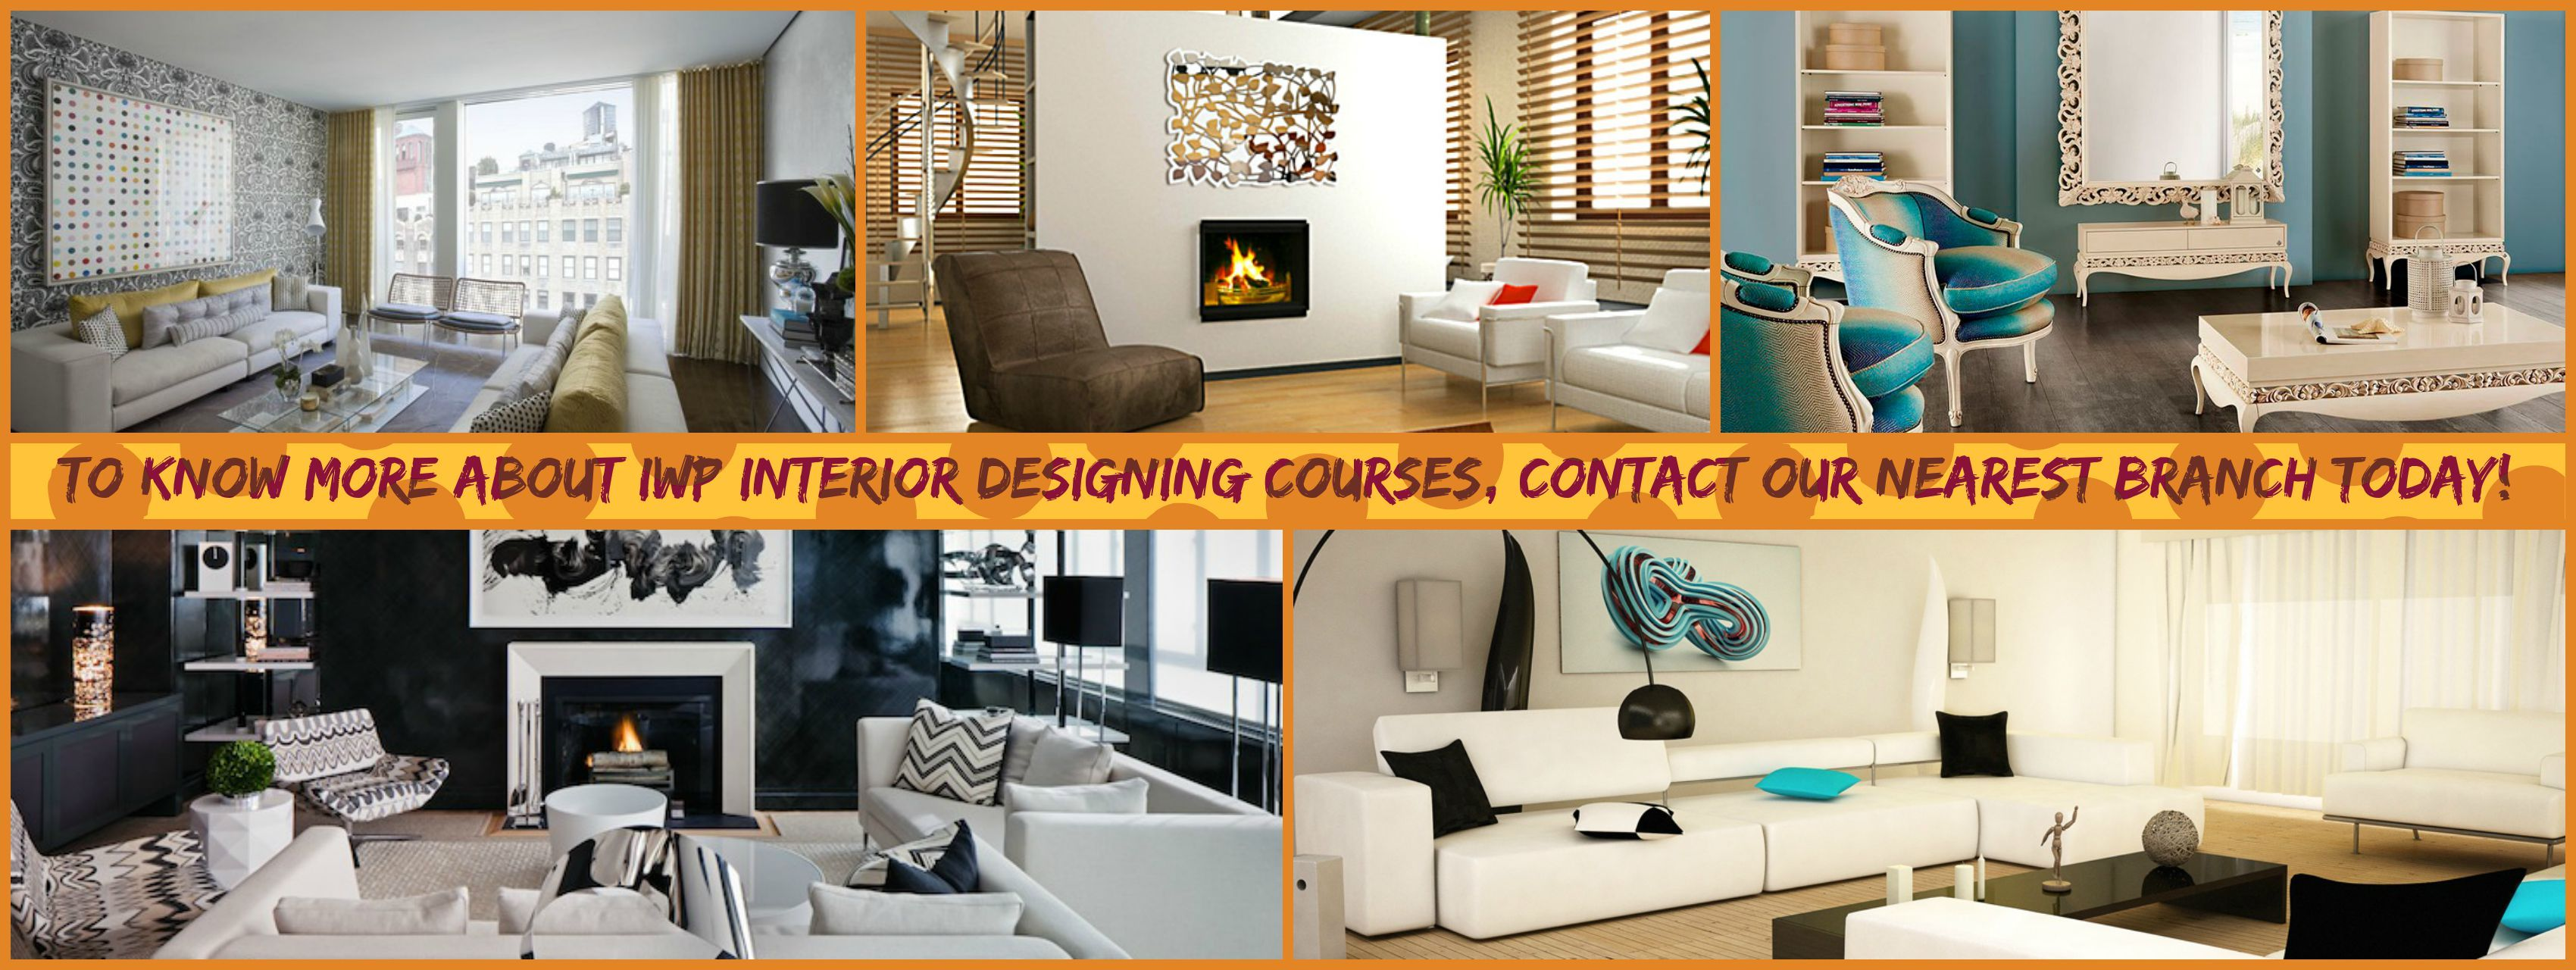 For InteriorDesign Decoration Course Details Contact Our Nearest Branch